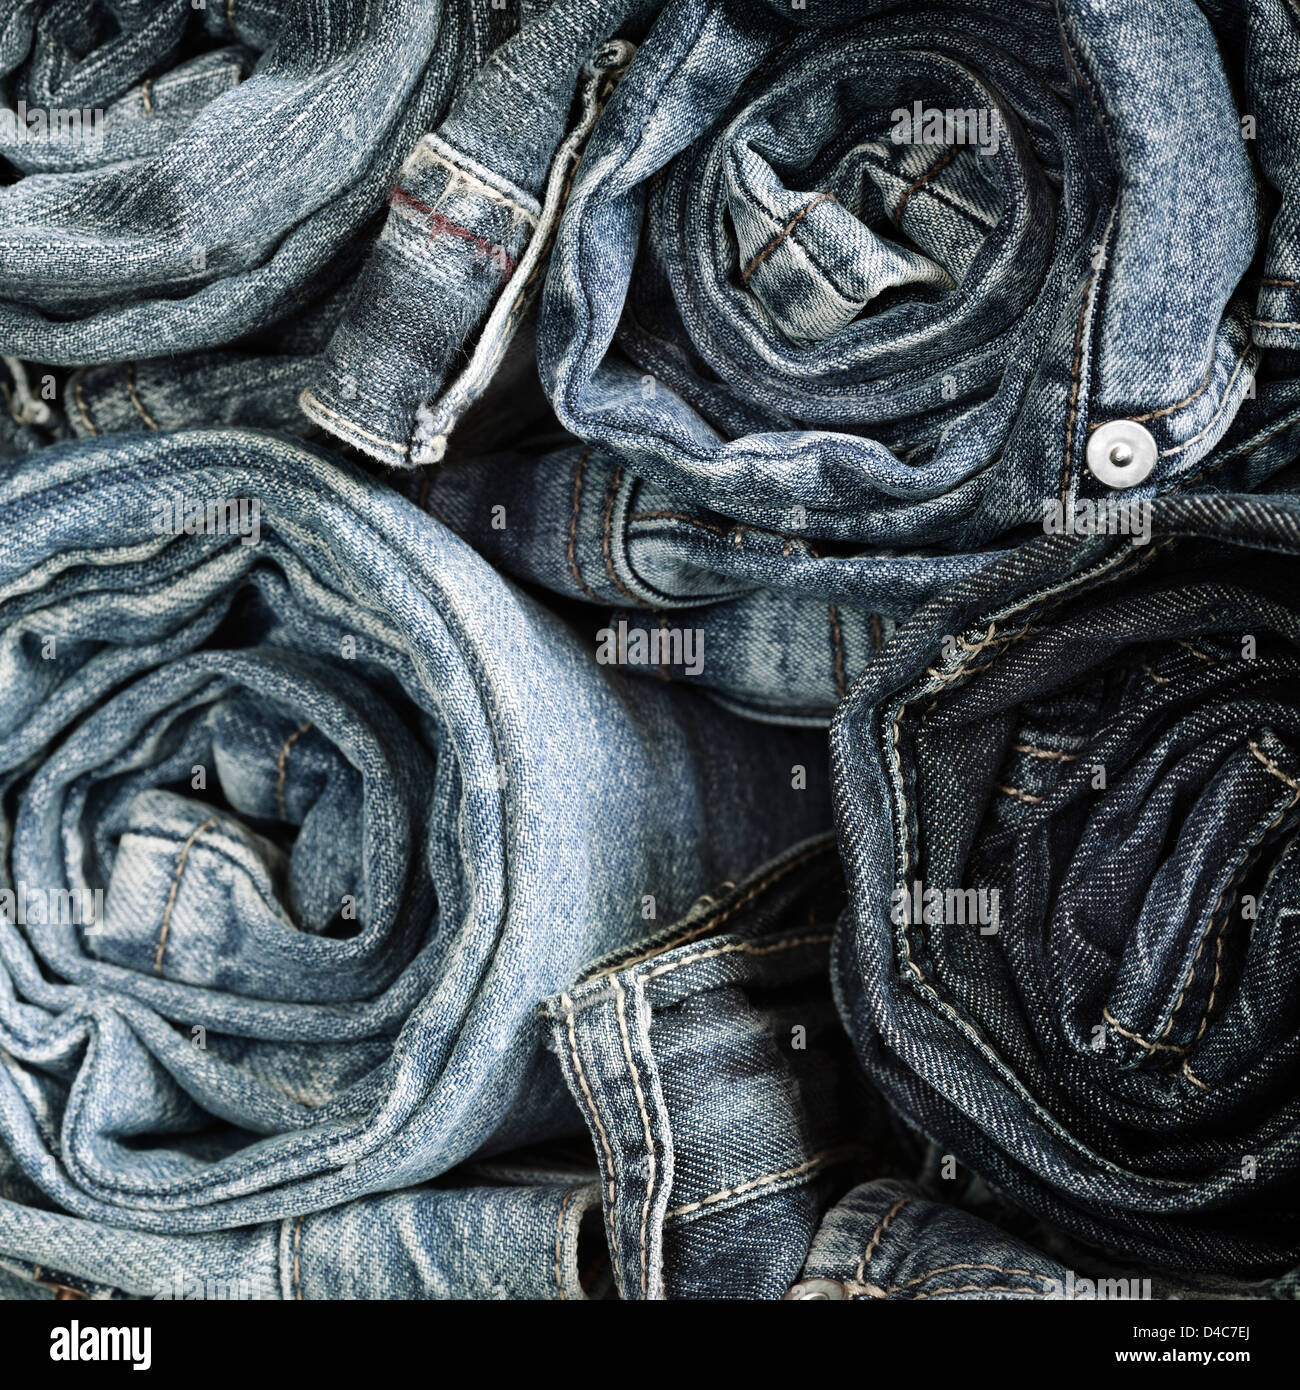 Blue Jeans background, selective focus on nearest - Stock Image